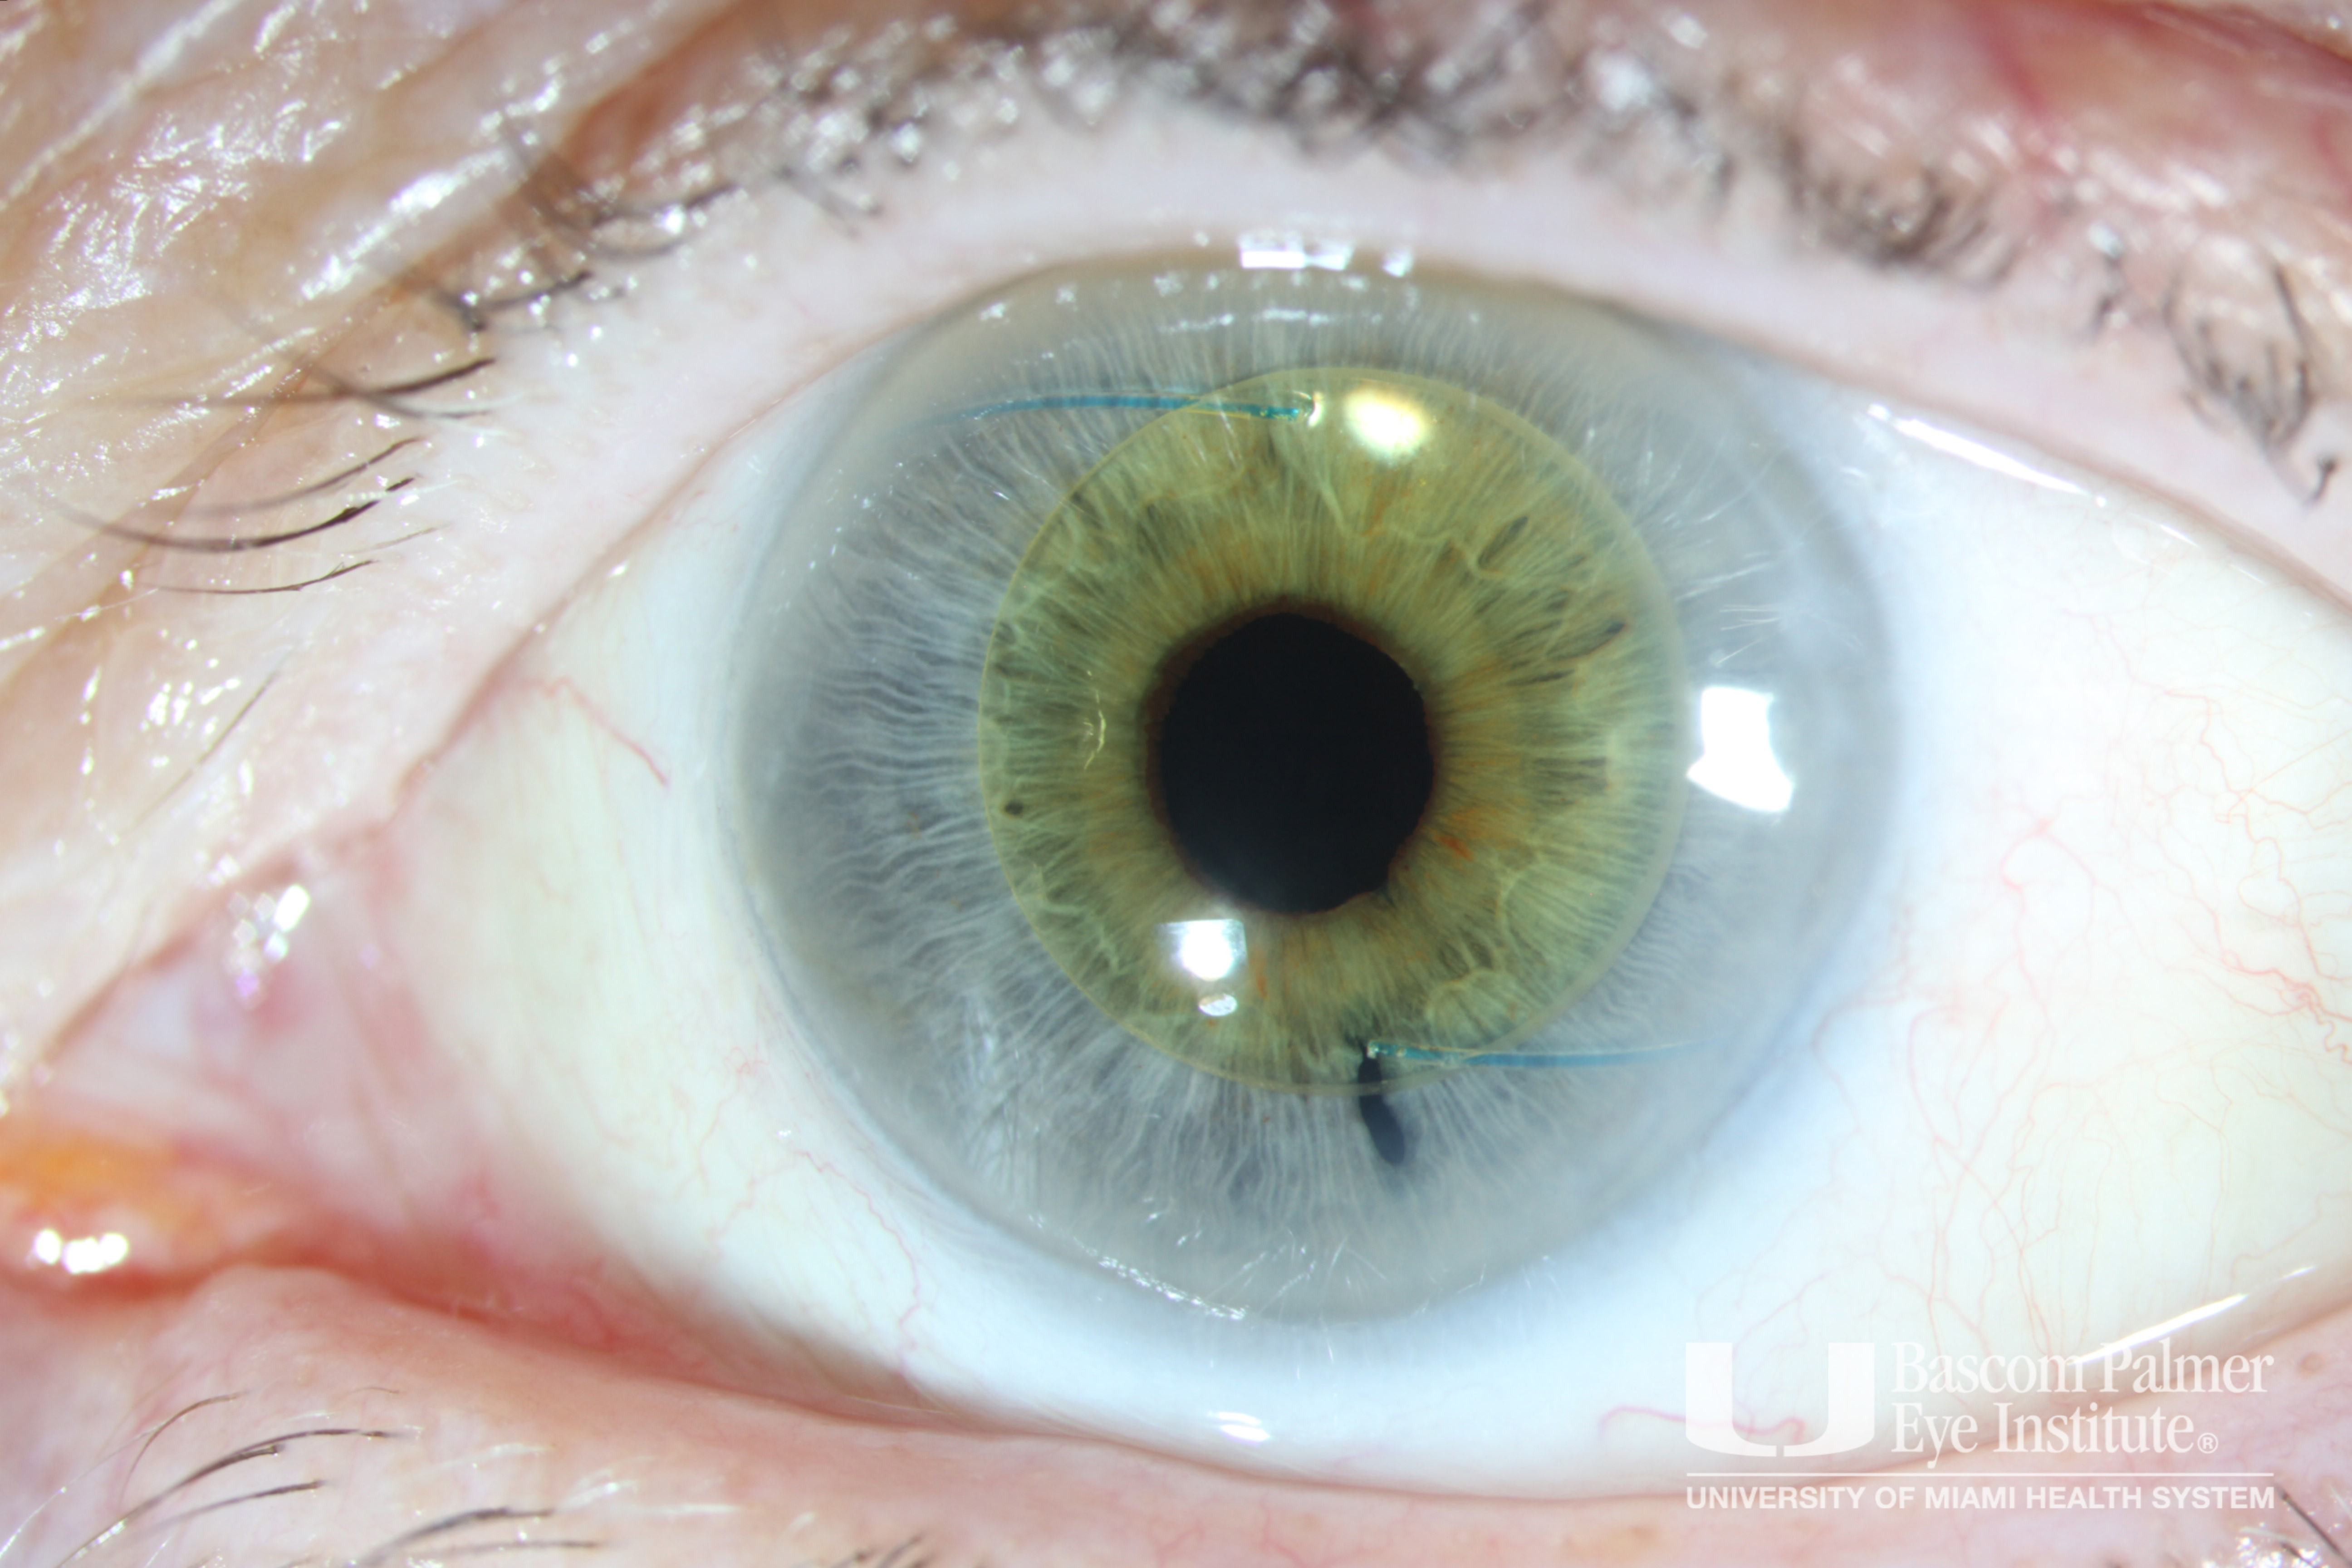 3-Piece Intraocular Lens in the Anterior Chamber